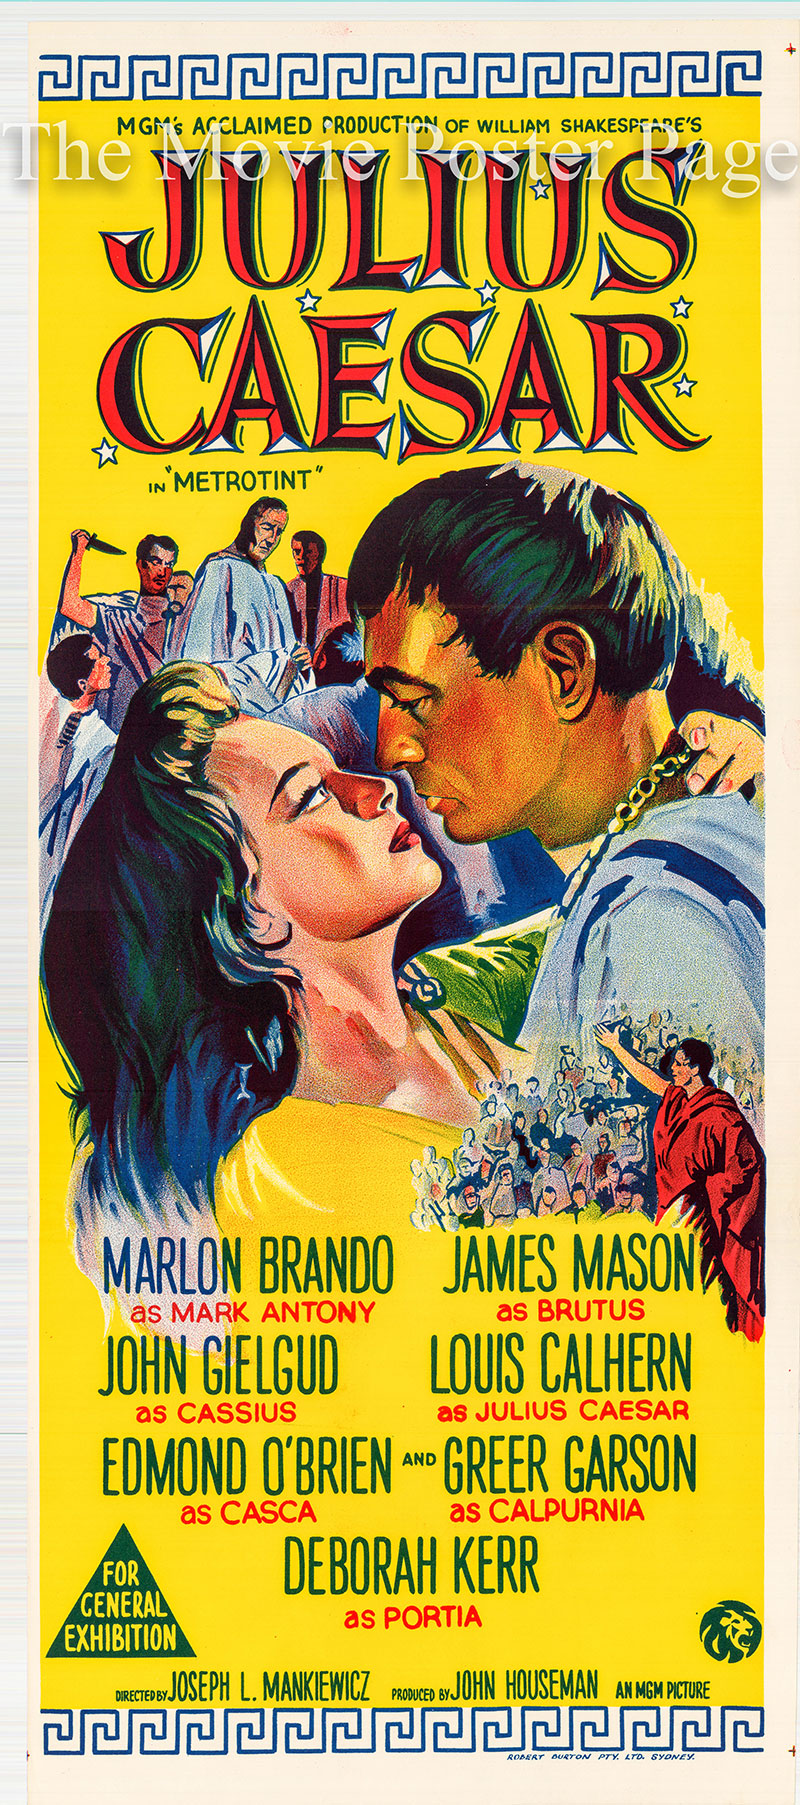 Pictured is an Australian day bill promotional poster for a 1968 rerelease of the 1953 Joseph L. Mankiewicz film Julius Caesar starring Marlon Brando.